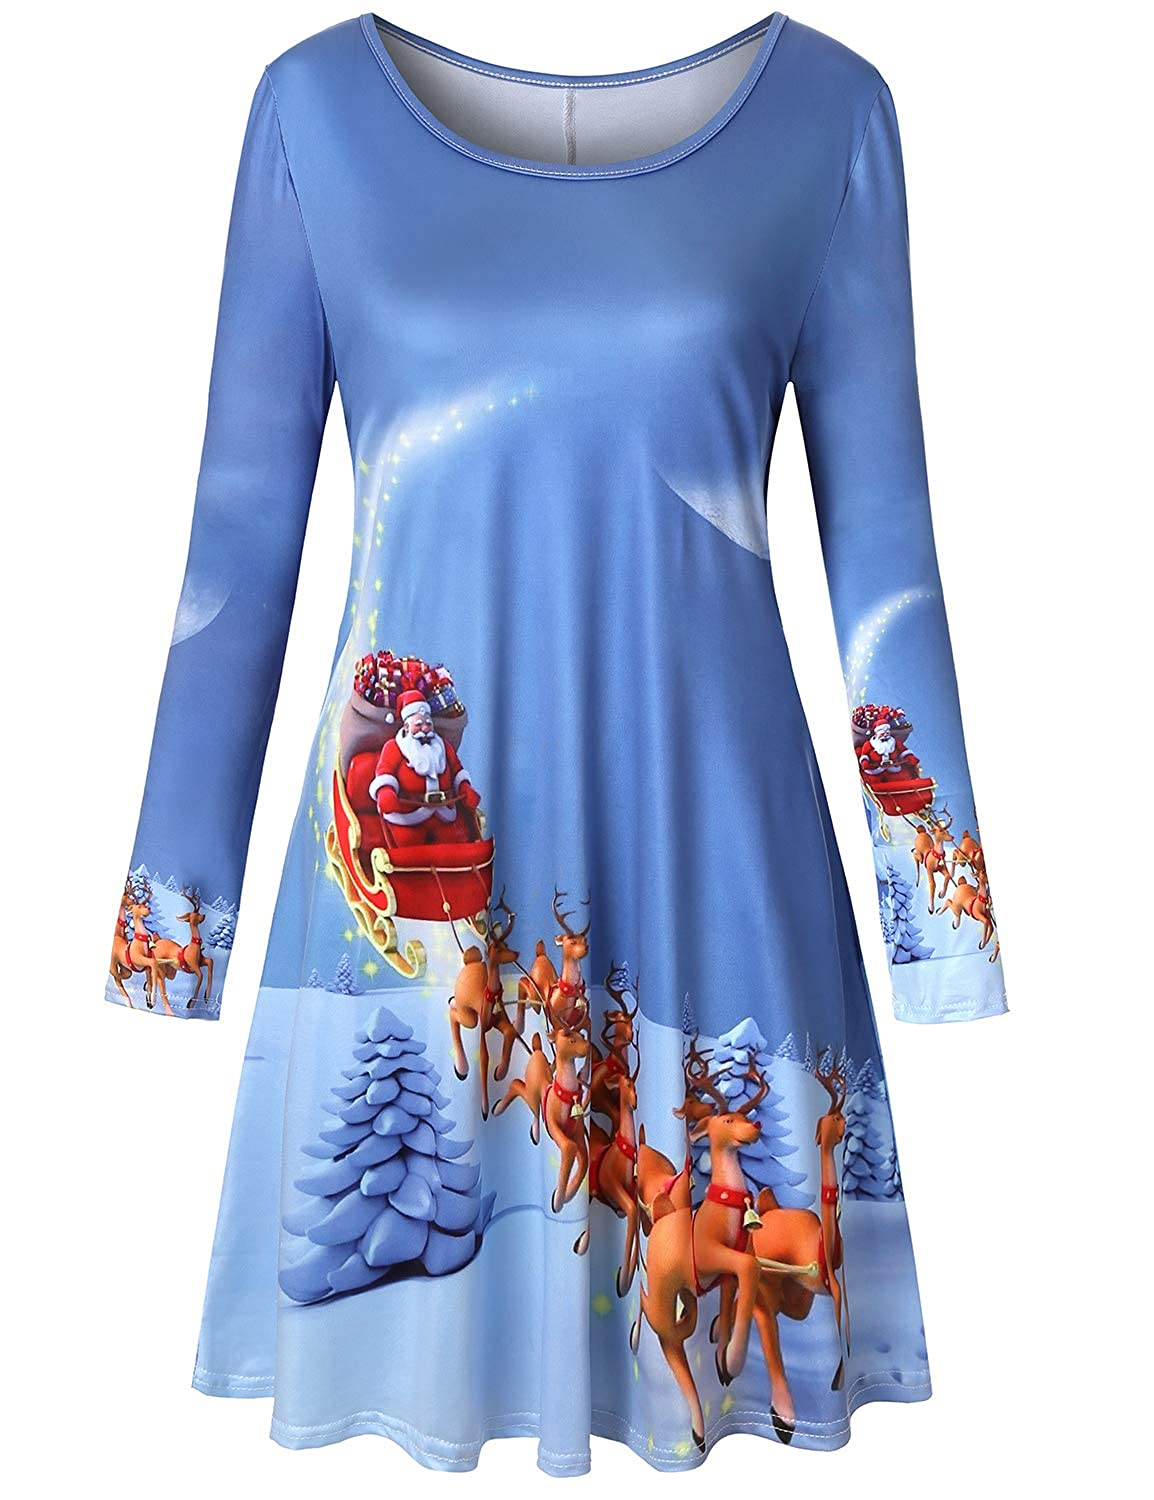 bluee2 Viracy Womens Christmas Dress Long Sleeve Flared Swing Tunic Dress